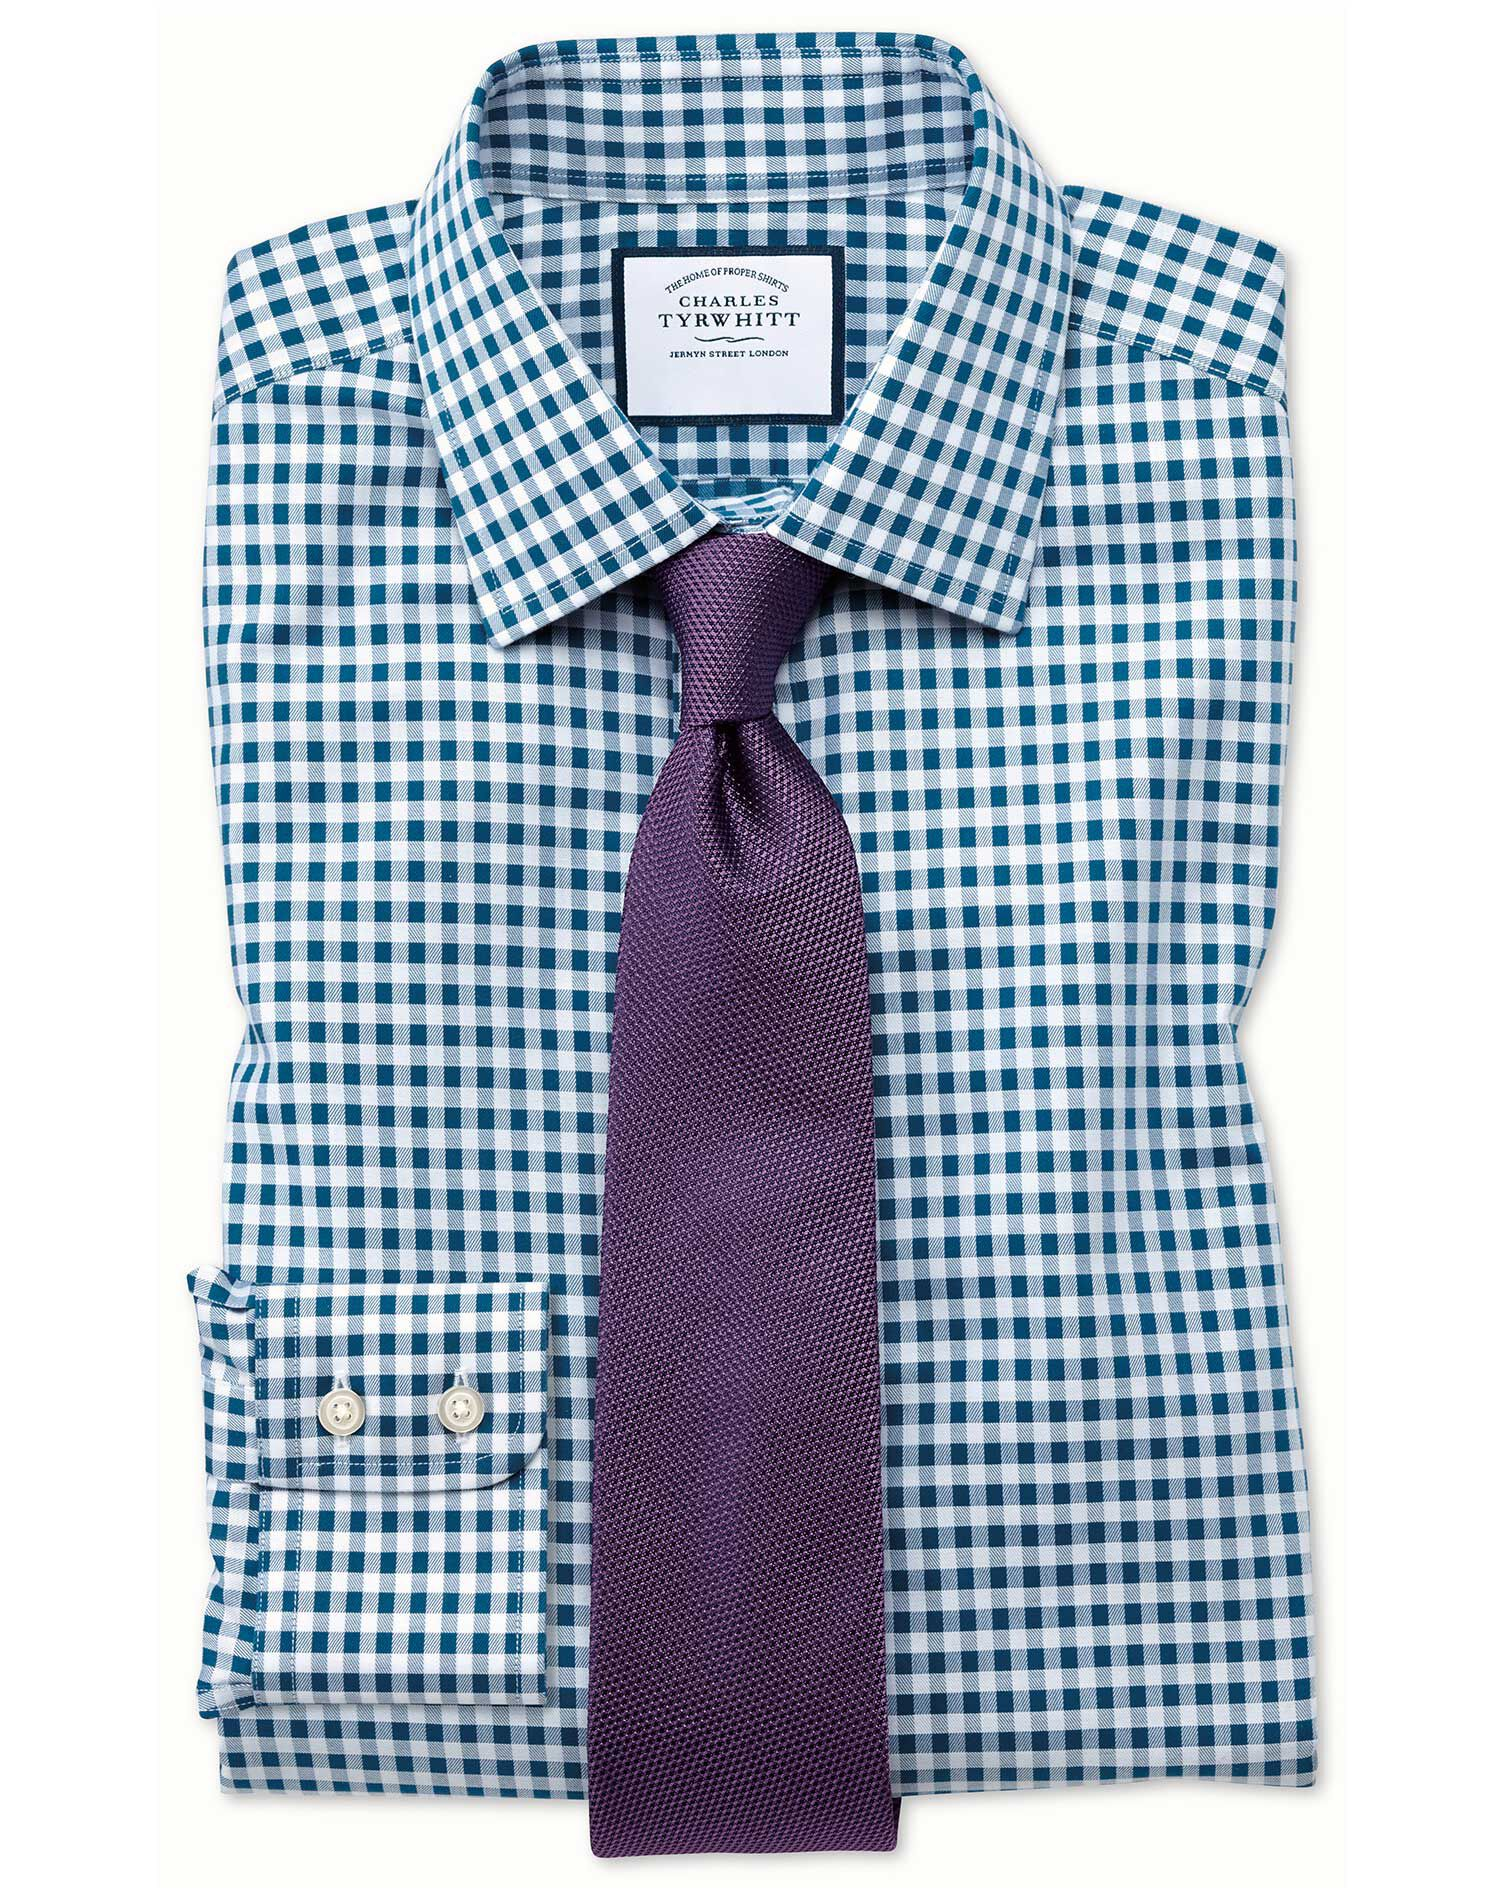 Slim Fit Non-Iron Gingham Teal Cotton Formal Shirt Single Cuff Size 18/35 by Charles Tyrwhitt